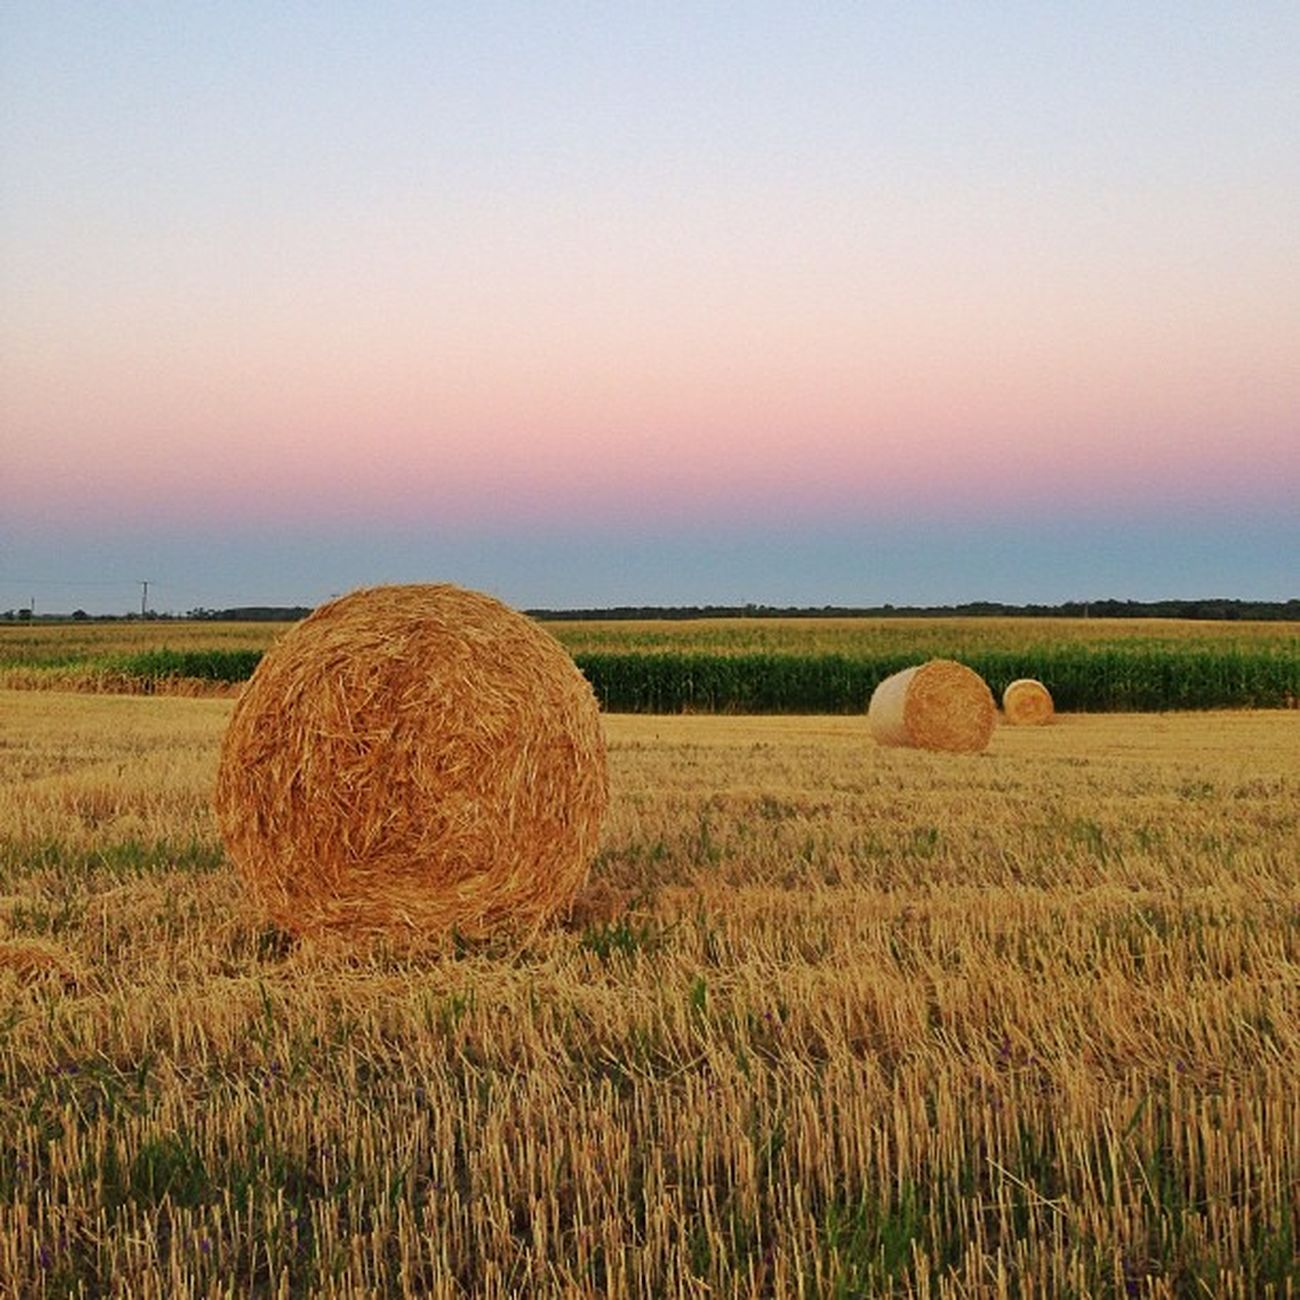 End of summer in #Hungary ☀️☀️ #hay #allshots_ #capture_today #gang_family Hungary Hay Gang_family Allshots_ O2travel Printmyfeedhappydays Capture_today Loveyoursummer Top_masters